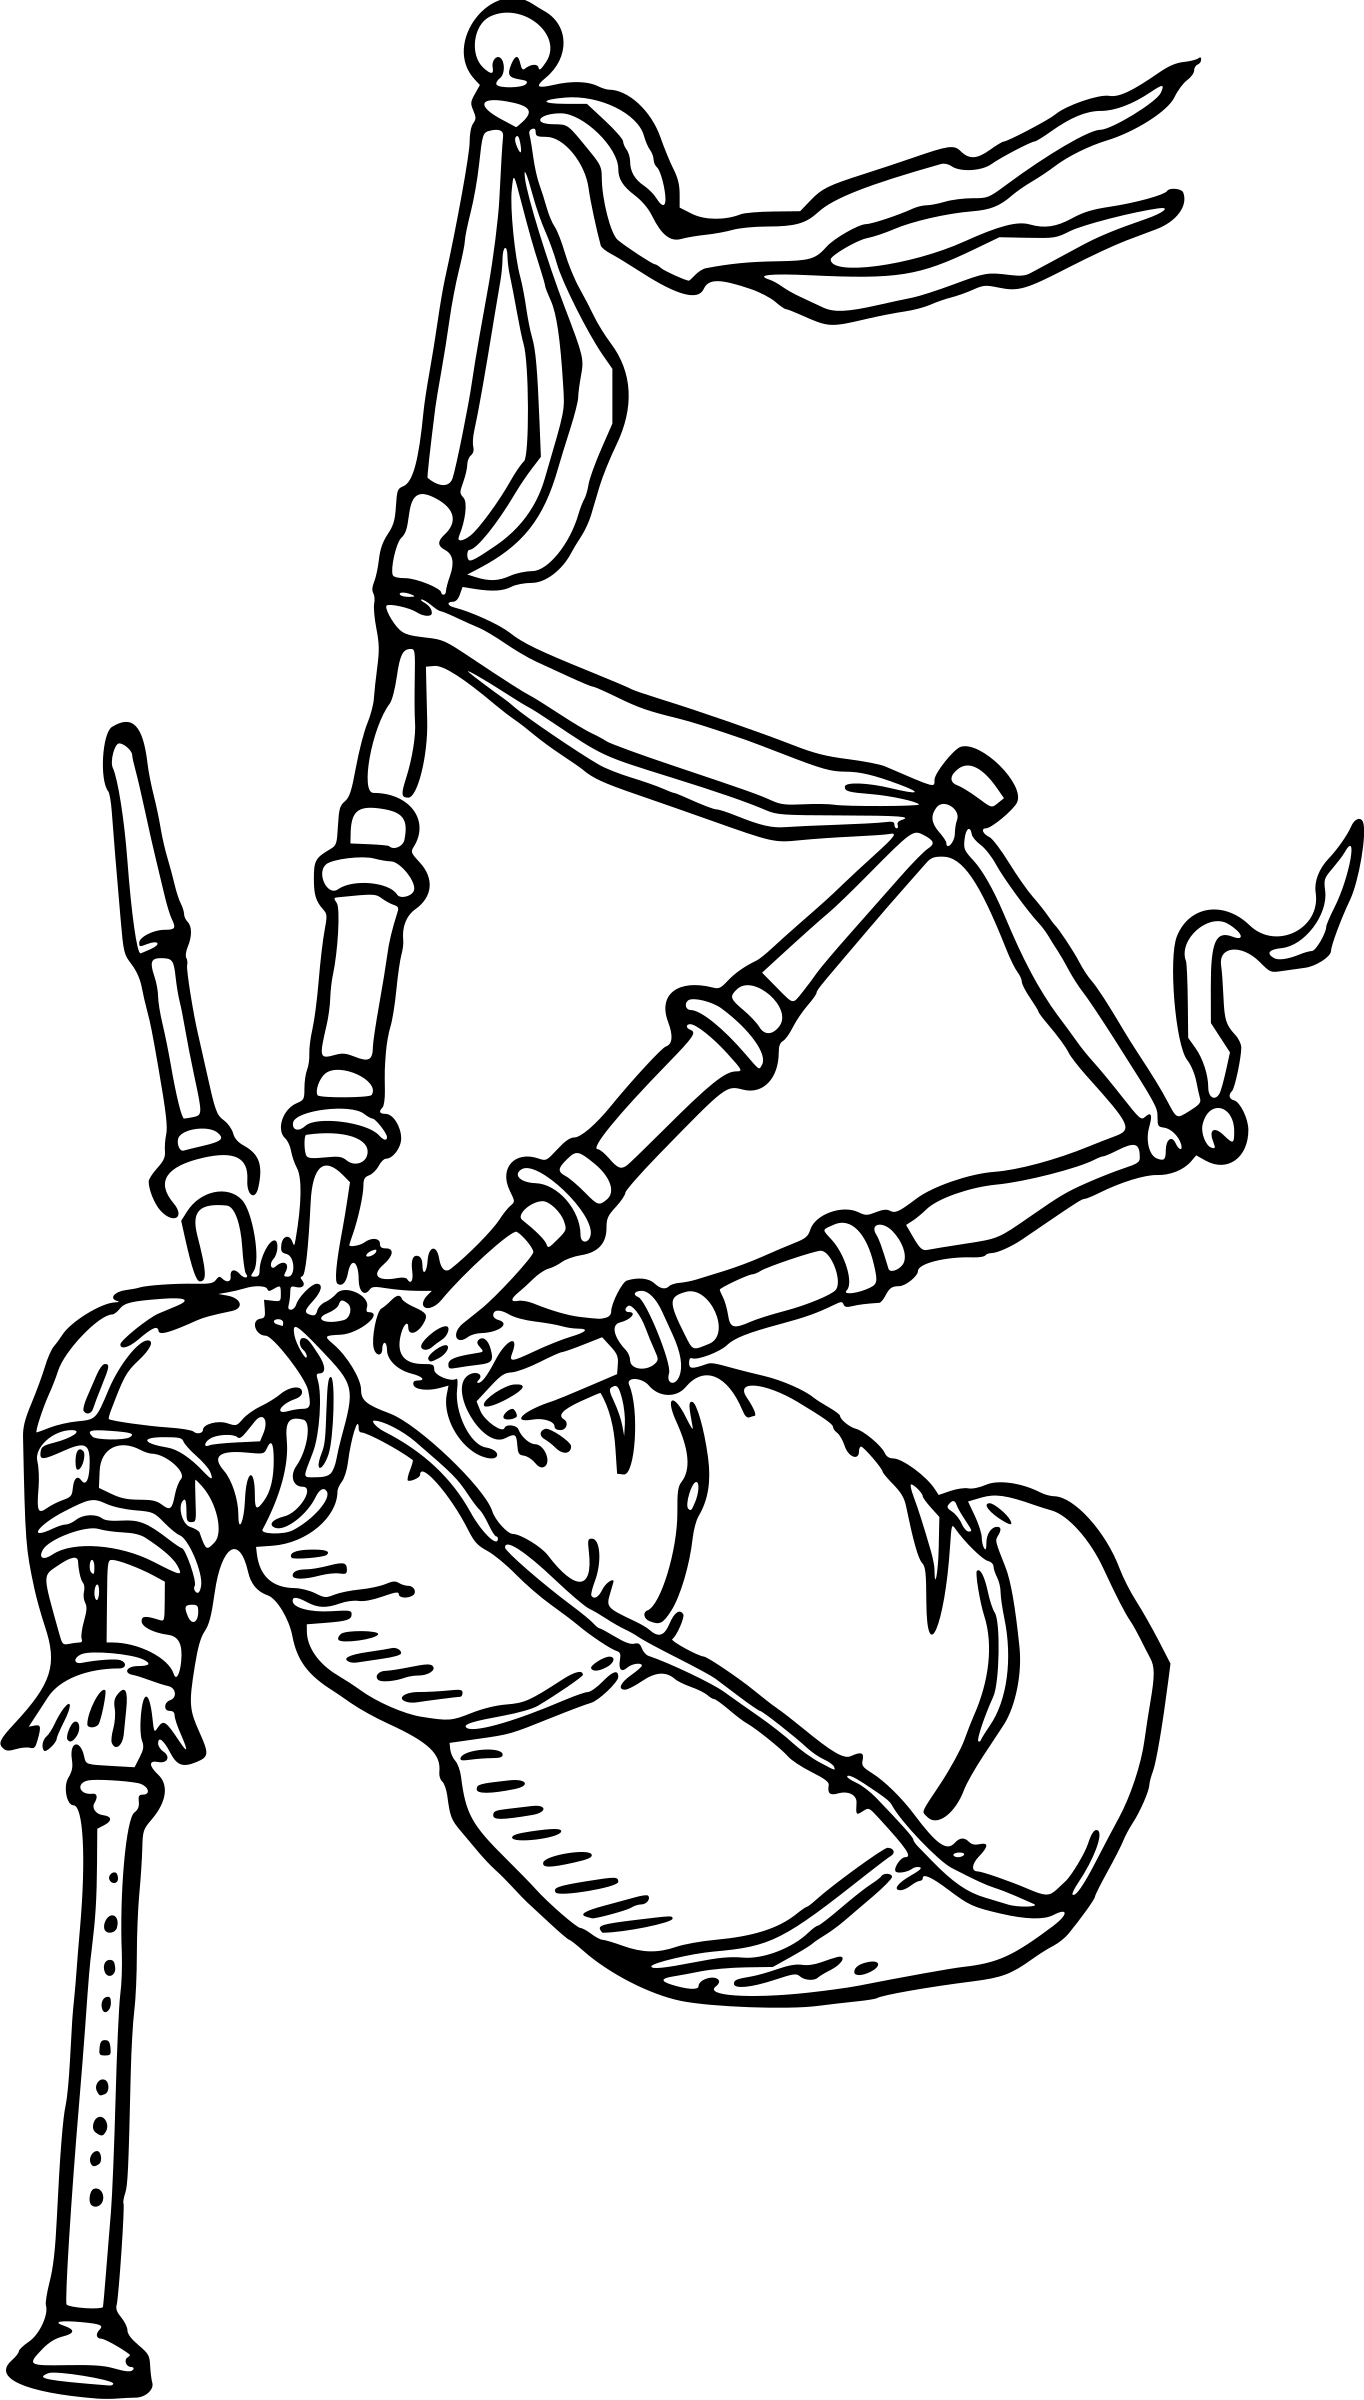 bagpipe clipart transparent png stickpng rh stickpng com bagpipe image clipart bagpipe clip art free